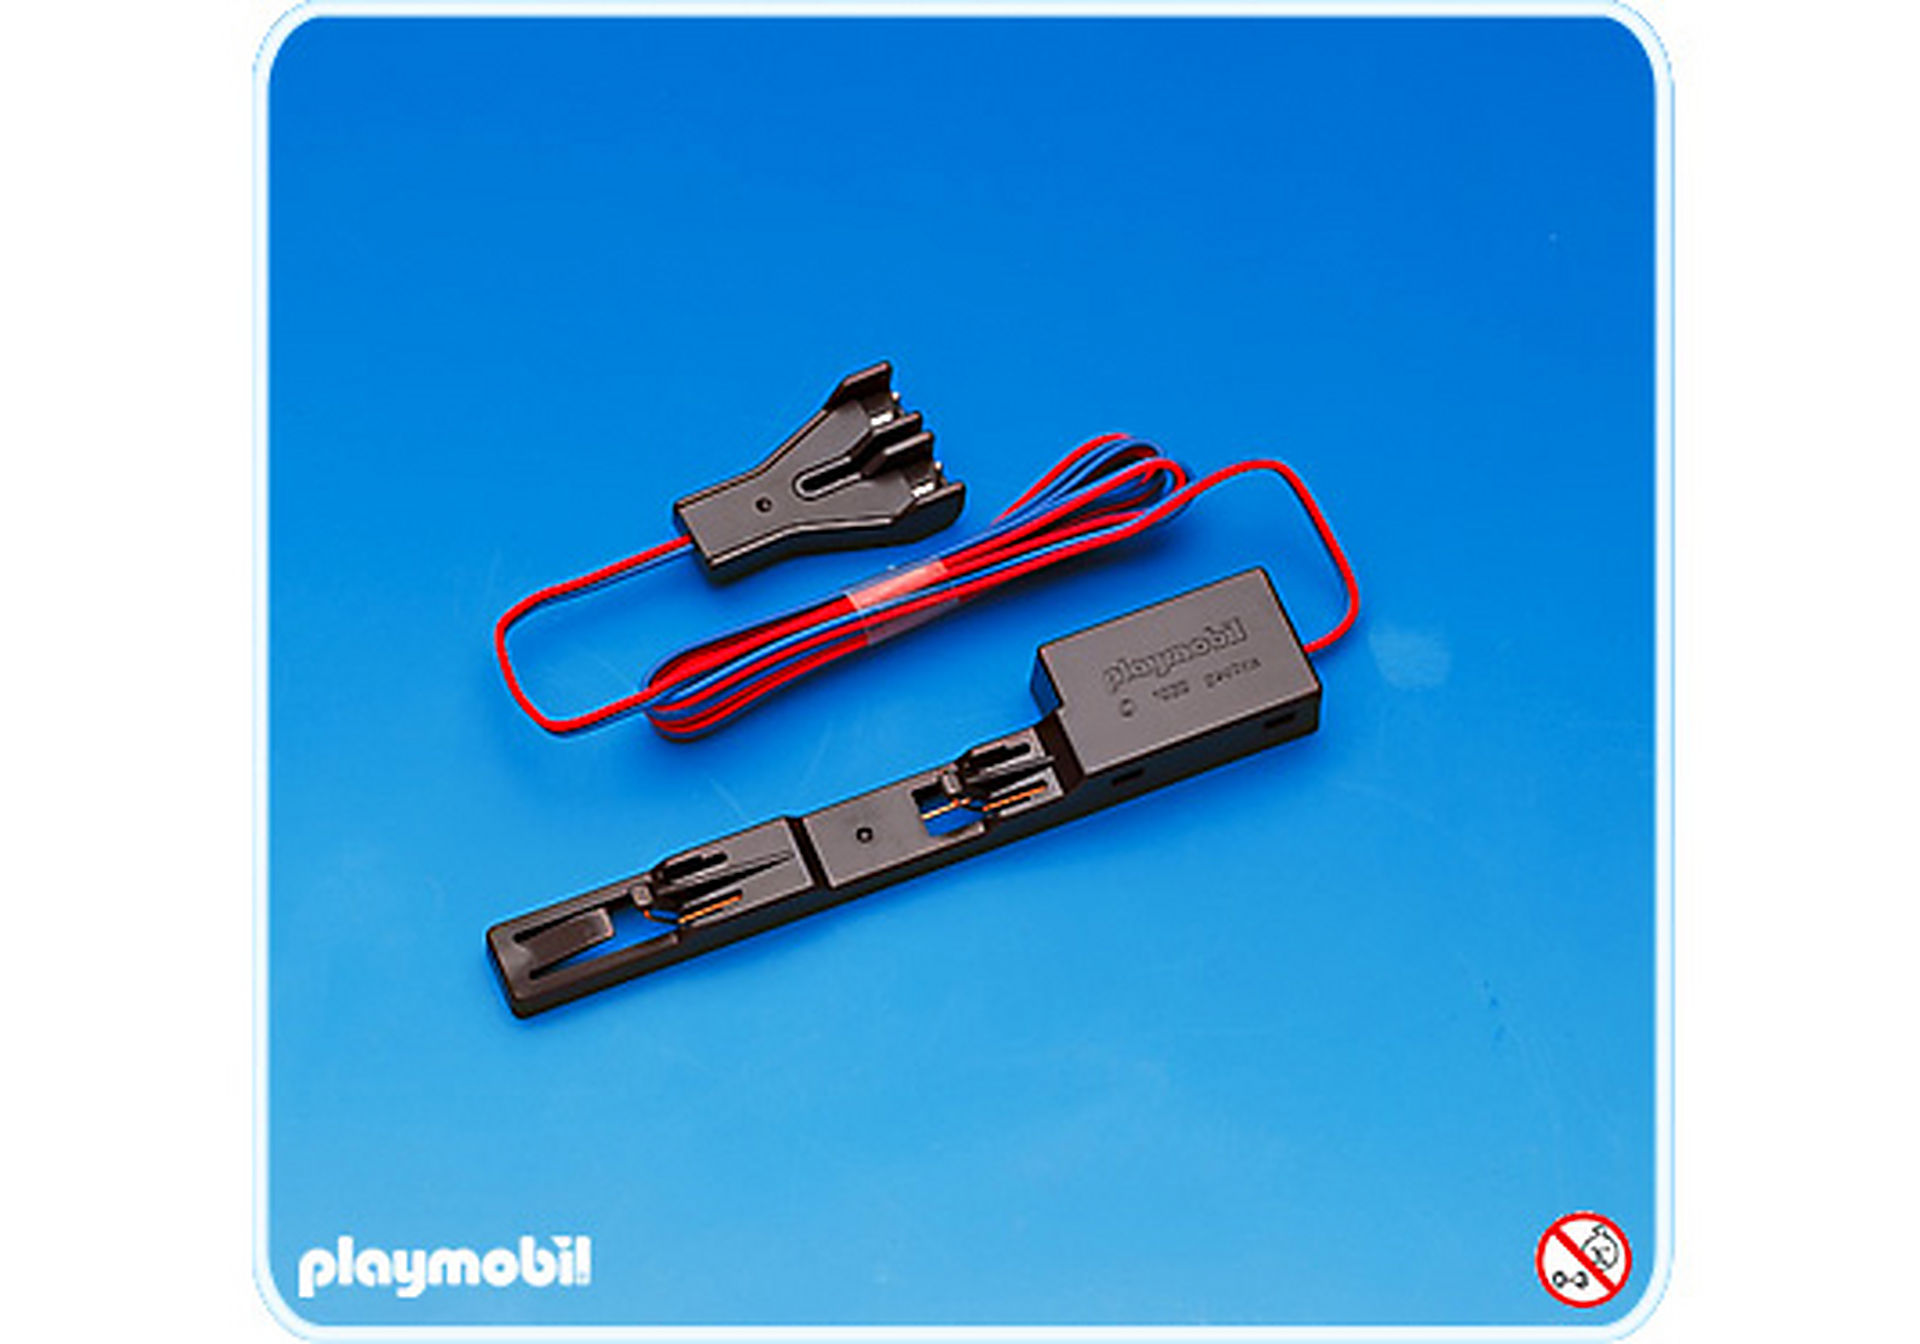 http://media.playmobil.com/i/playmobil/4372-A_product_detail/Côble de raccordement